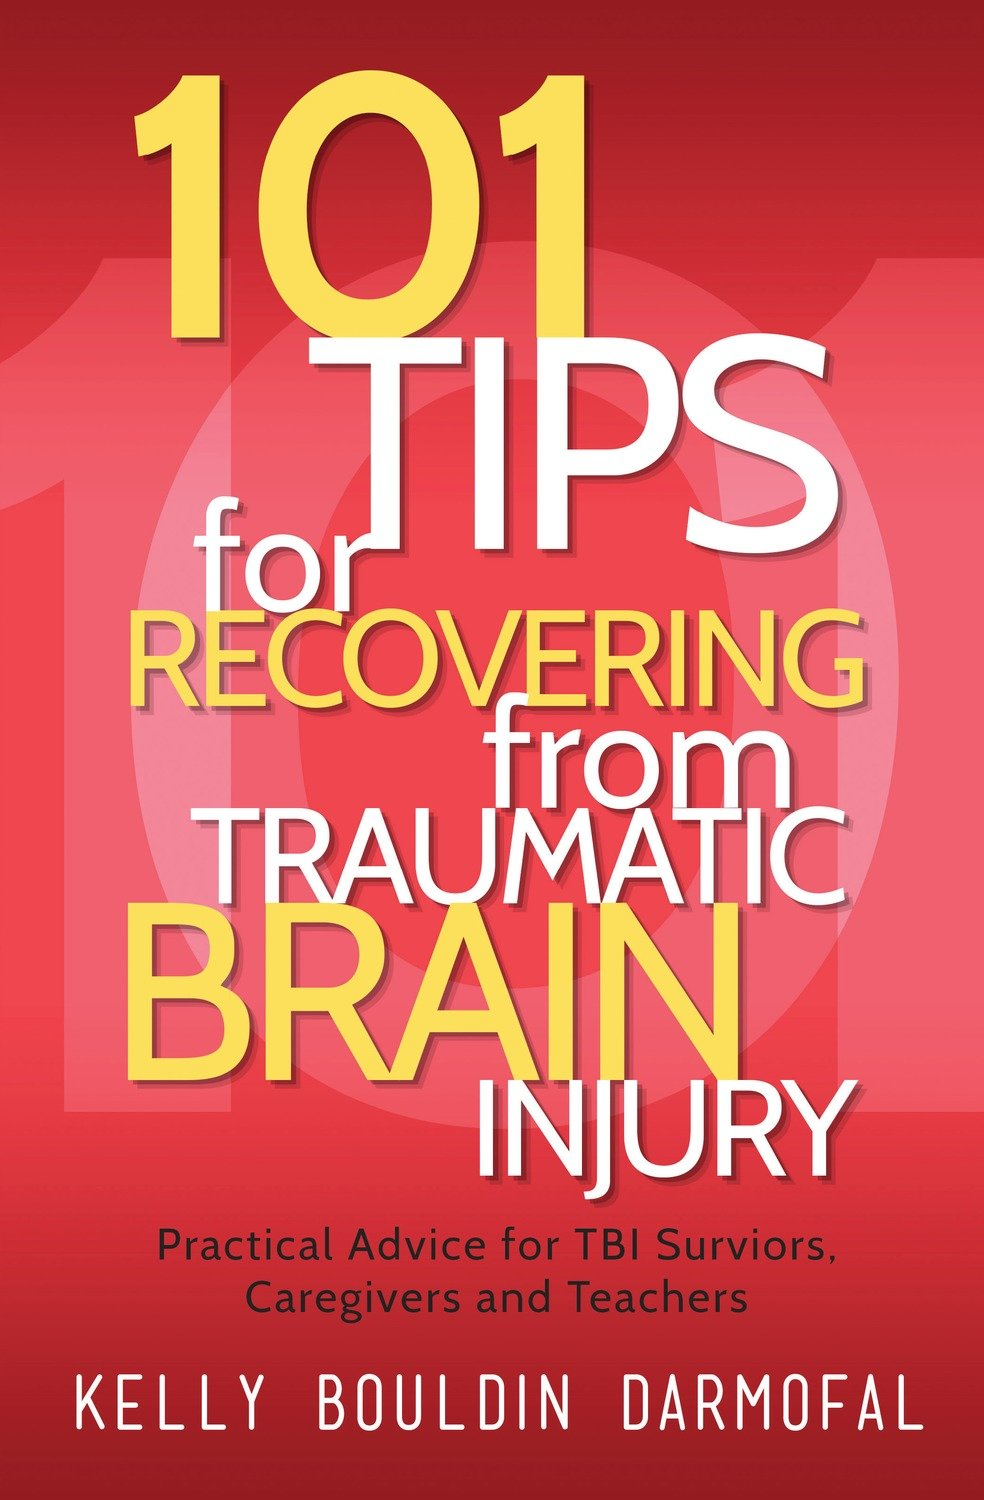 101 Tips for Recovering from Traumatic Brain Injury